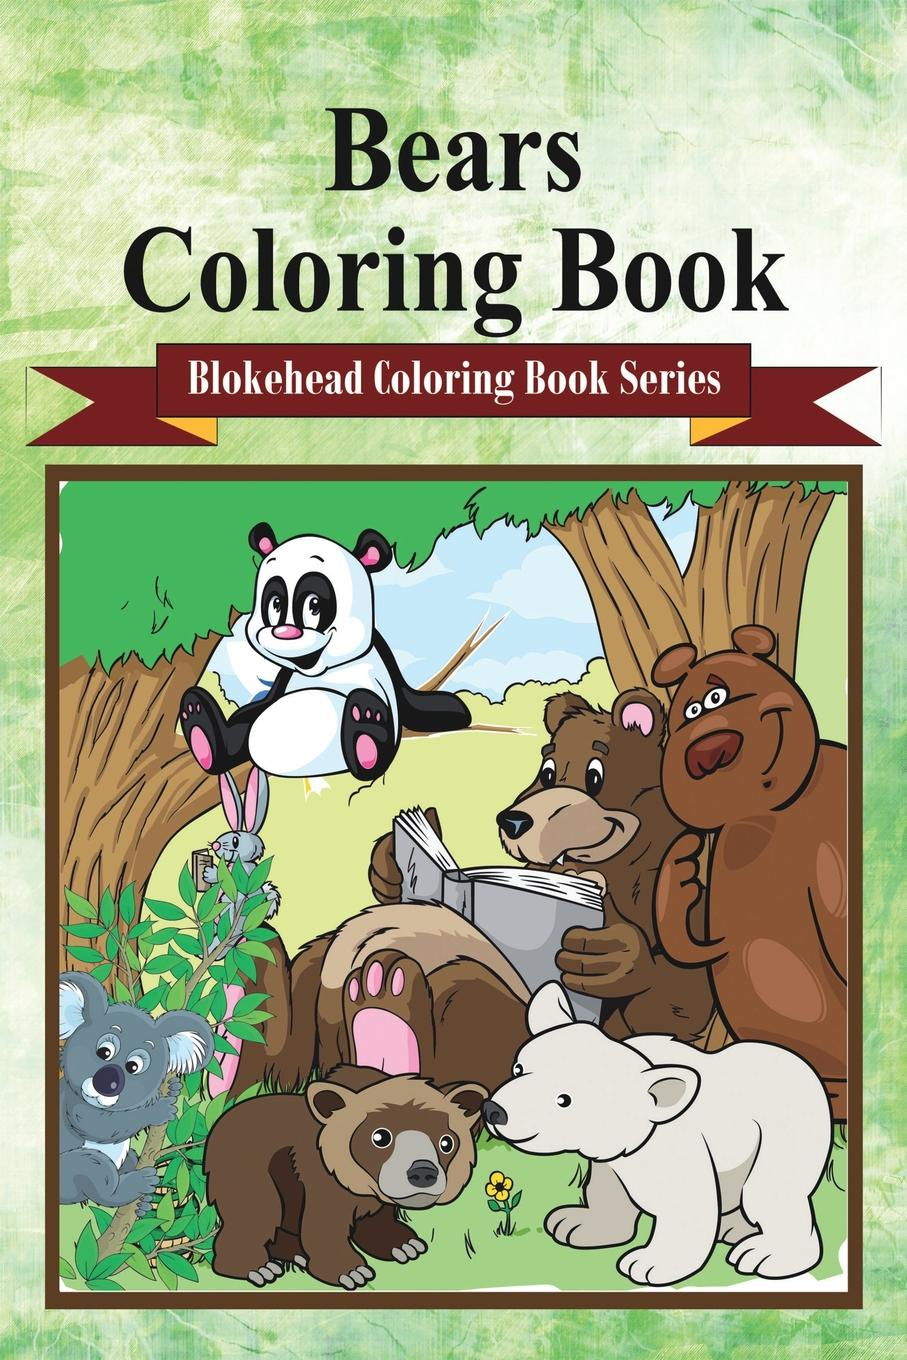 The Blokehead Bears Coloring Book sandra staines crazy maze coloring book